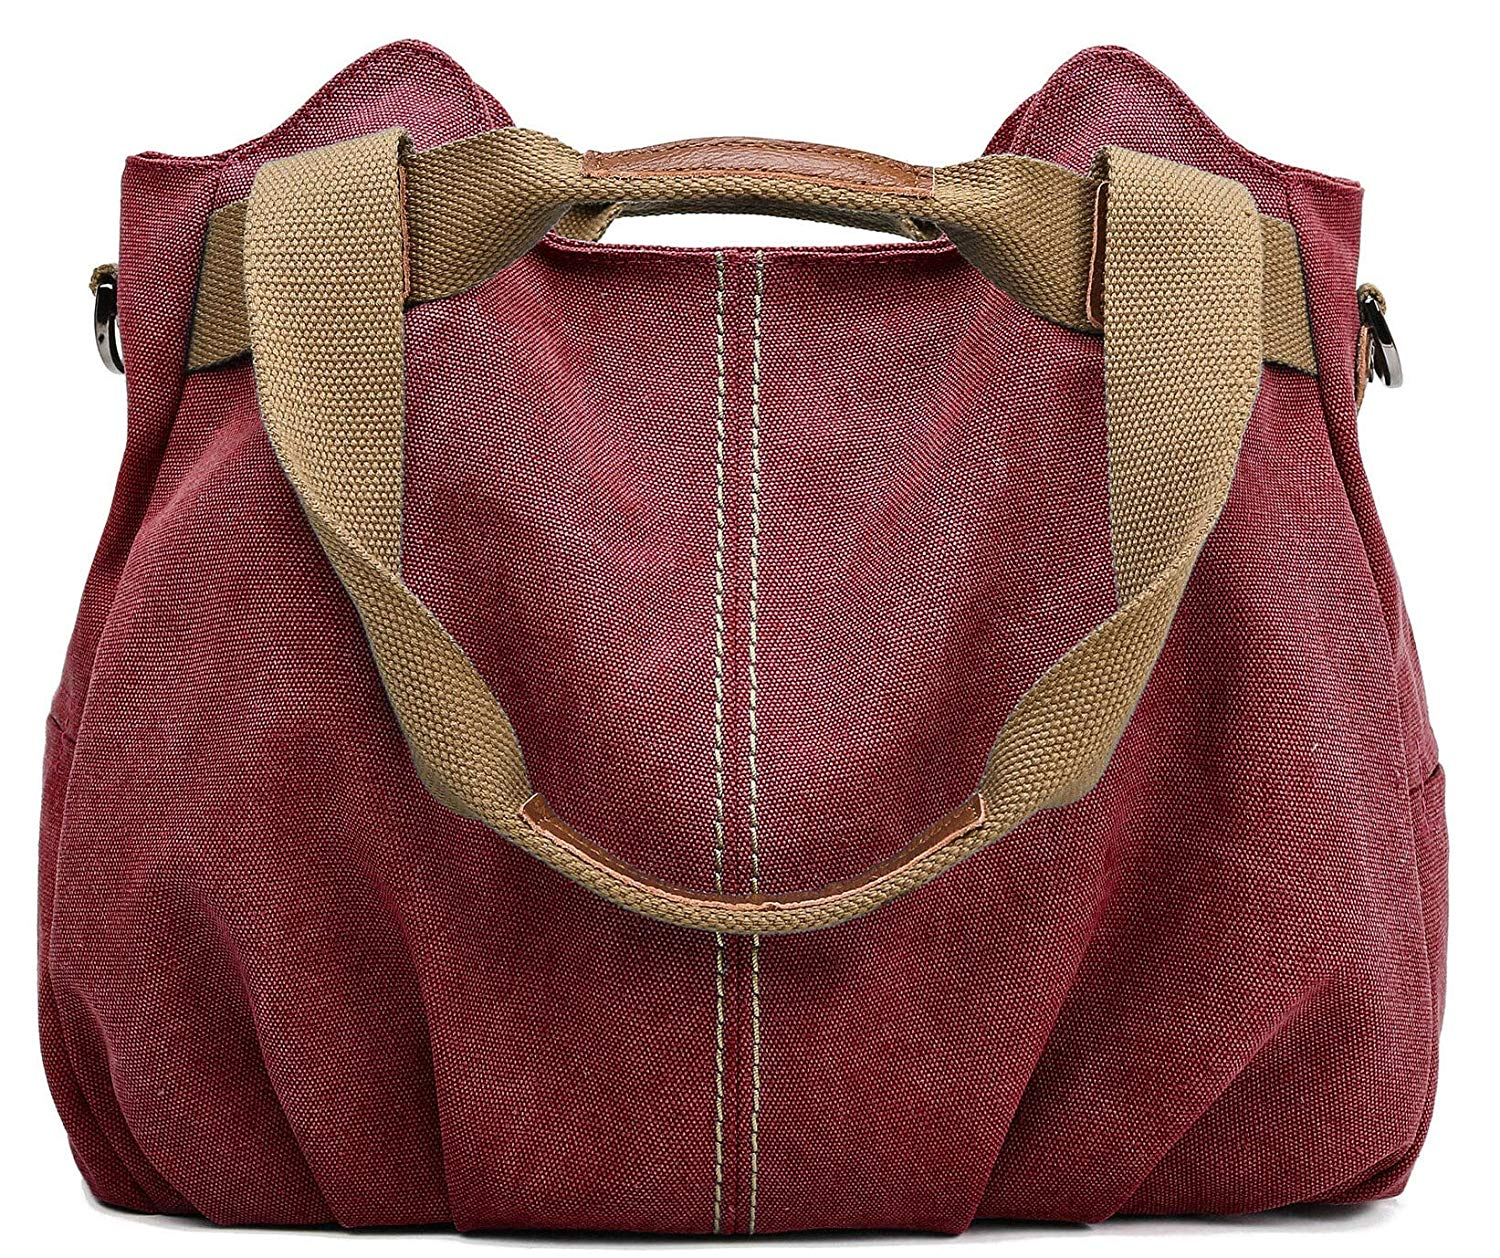 FREE SAMPLE Women's Ladies Casual Vintage Hobo Canvas Daily Purse Top Handle Shoulder Tote Shopper Handbag